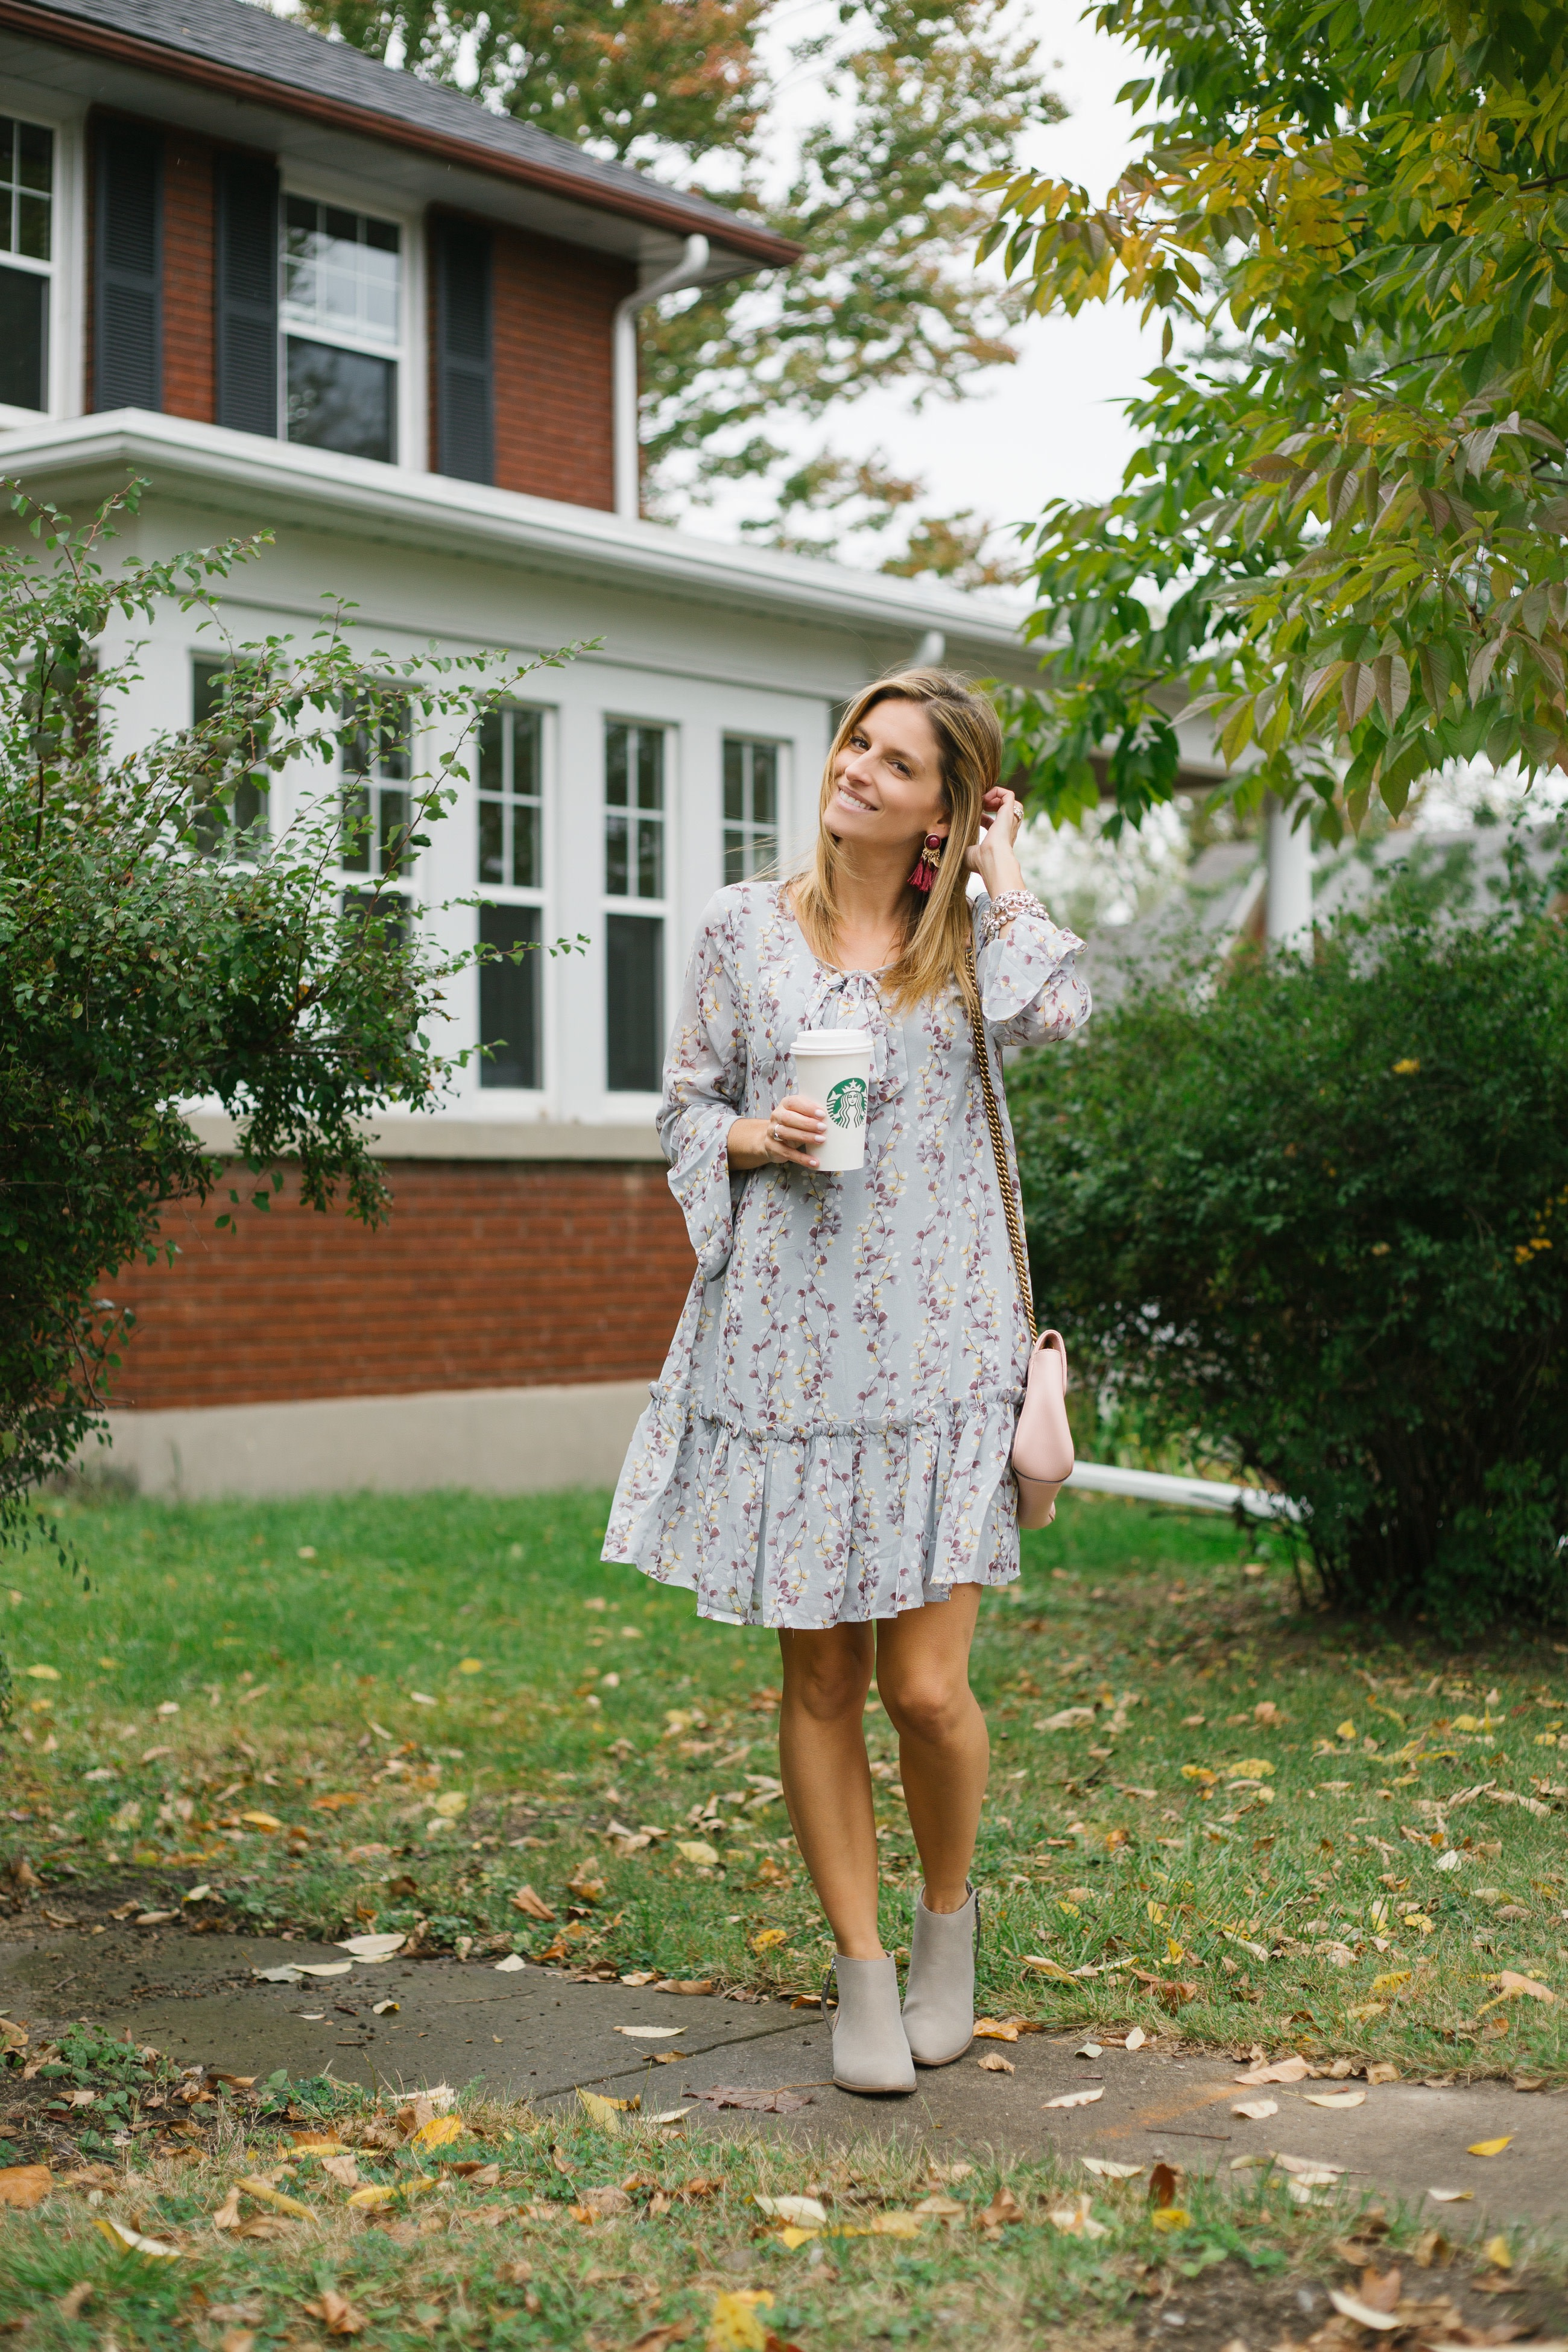 Pretty long sleeved dress for fall with booties